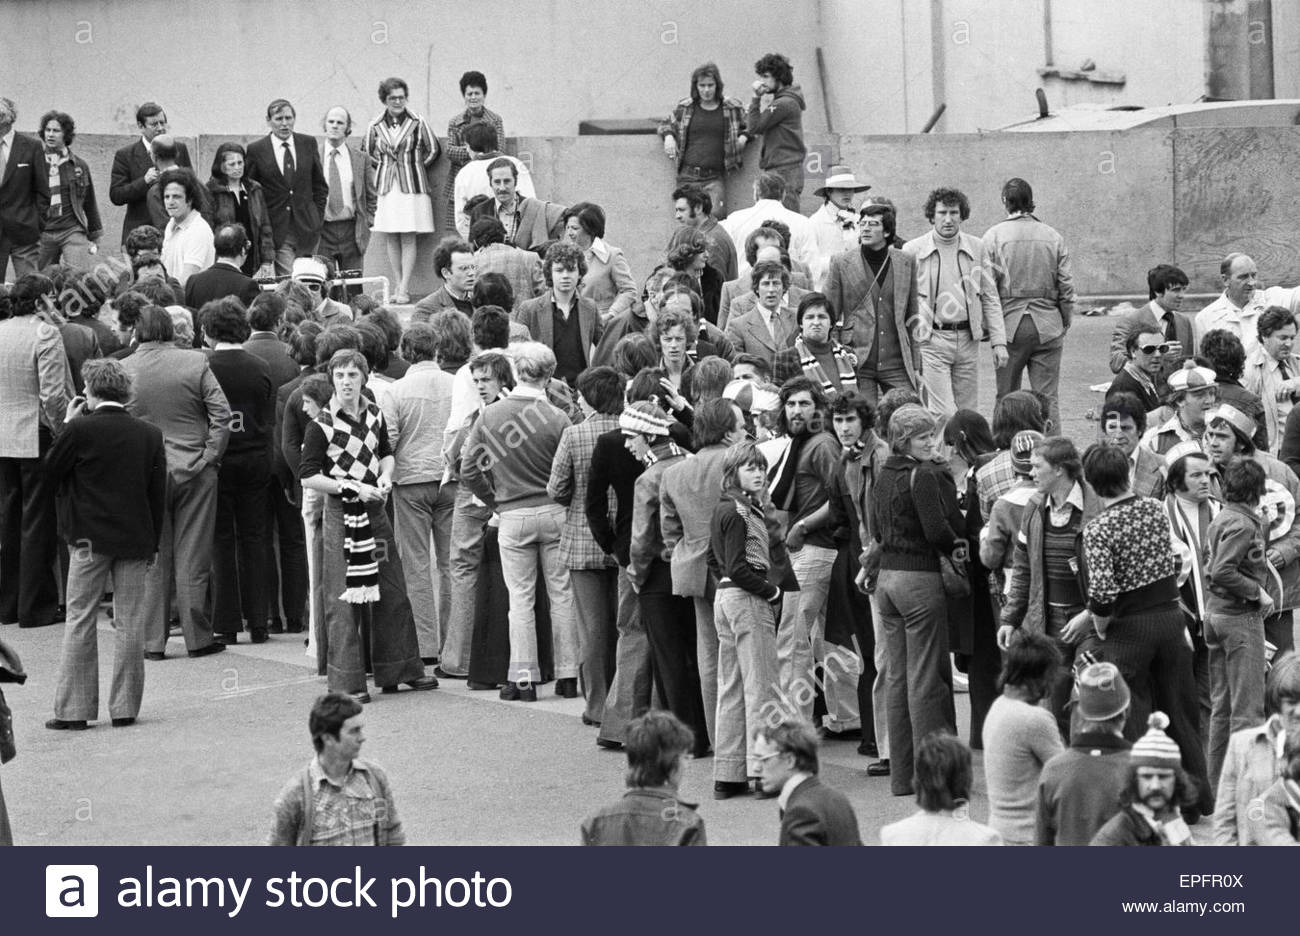 southampton-1-0-manchester-united-fa-cup-final-1976-wembley-